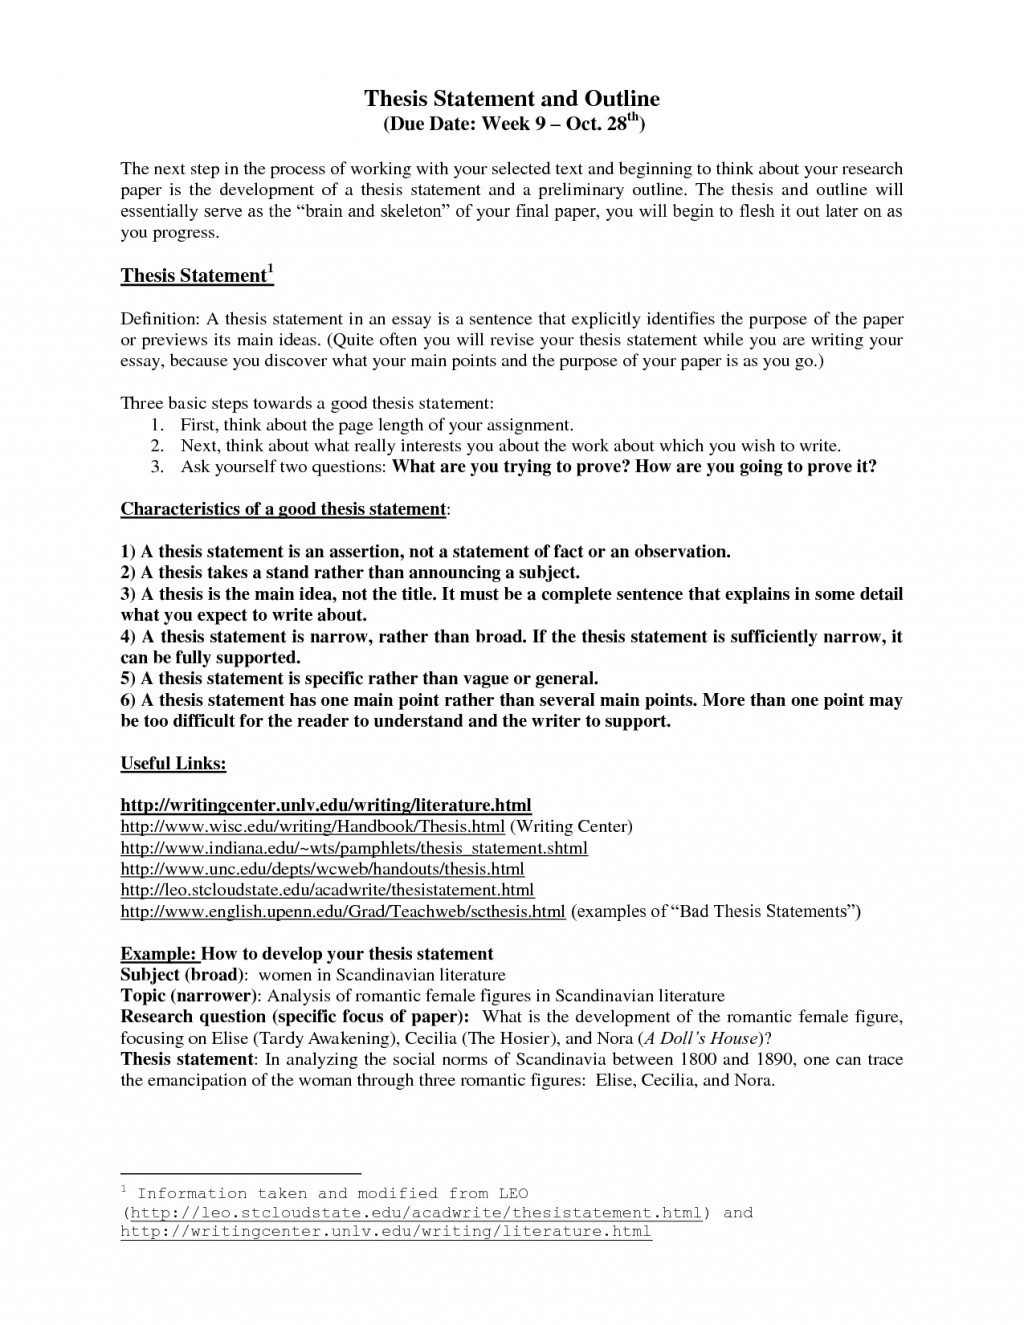 007 Thesis Statement And Outline Template Wx8nmdez Research Paper Fascinating Autism Large